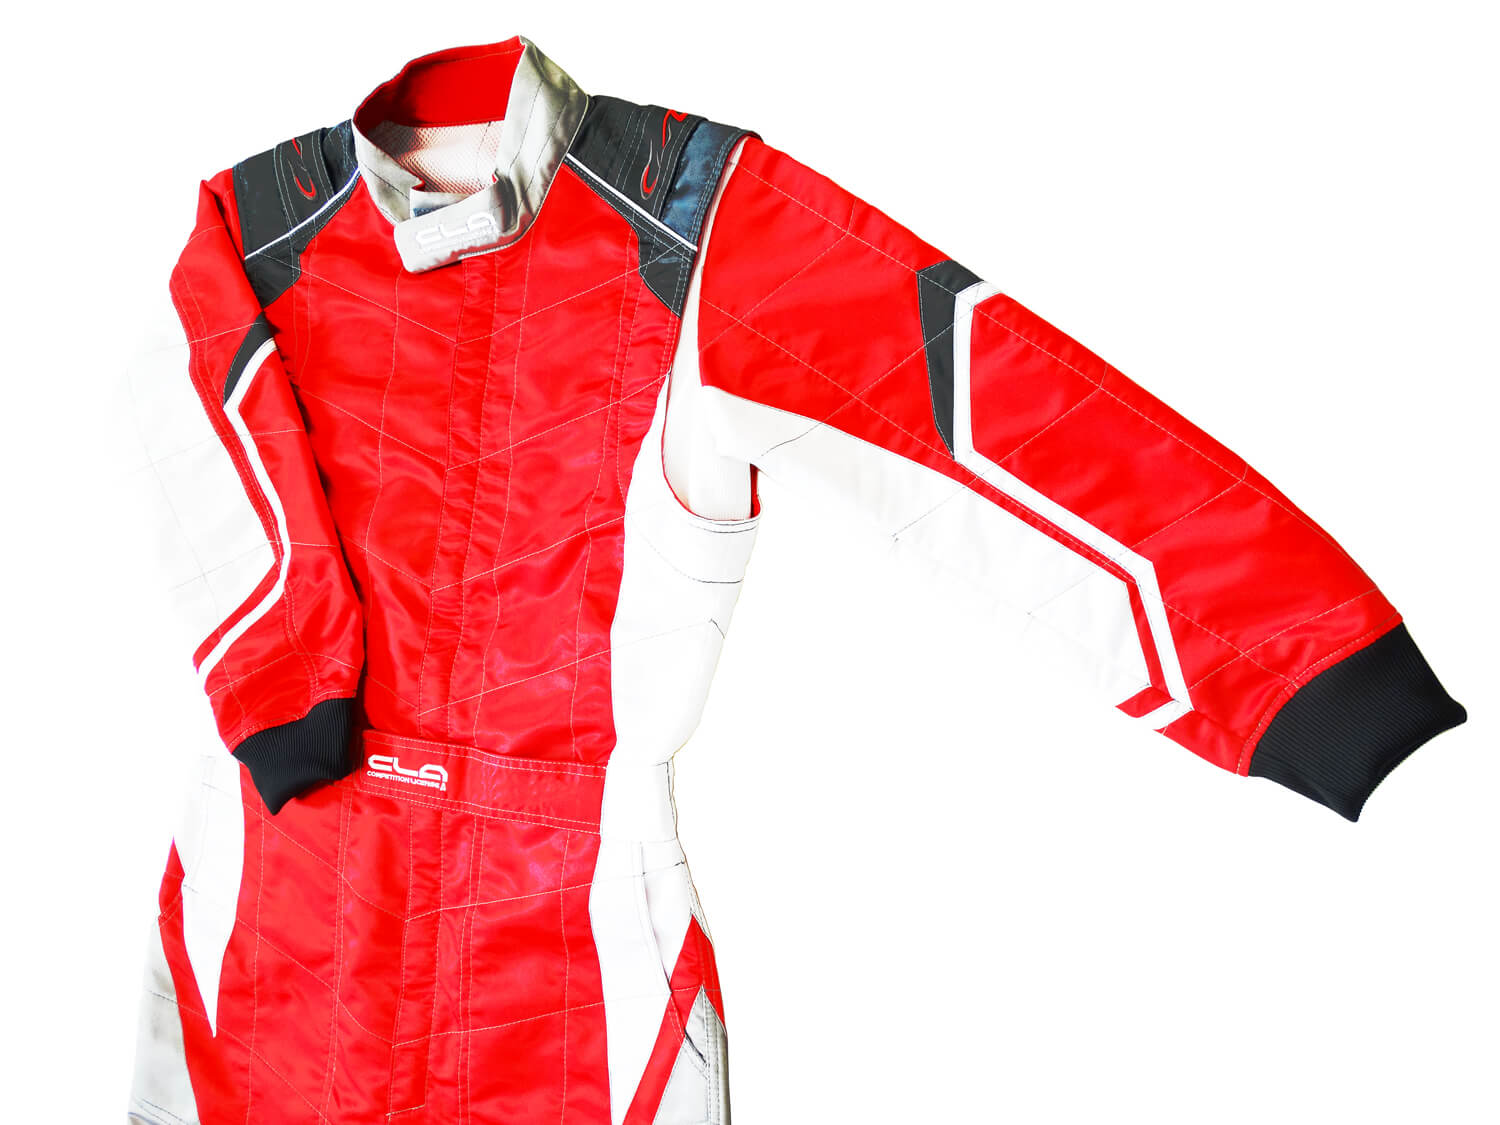 Race Suits Lotus Hobby Kart Race Suit 2014 Style